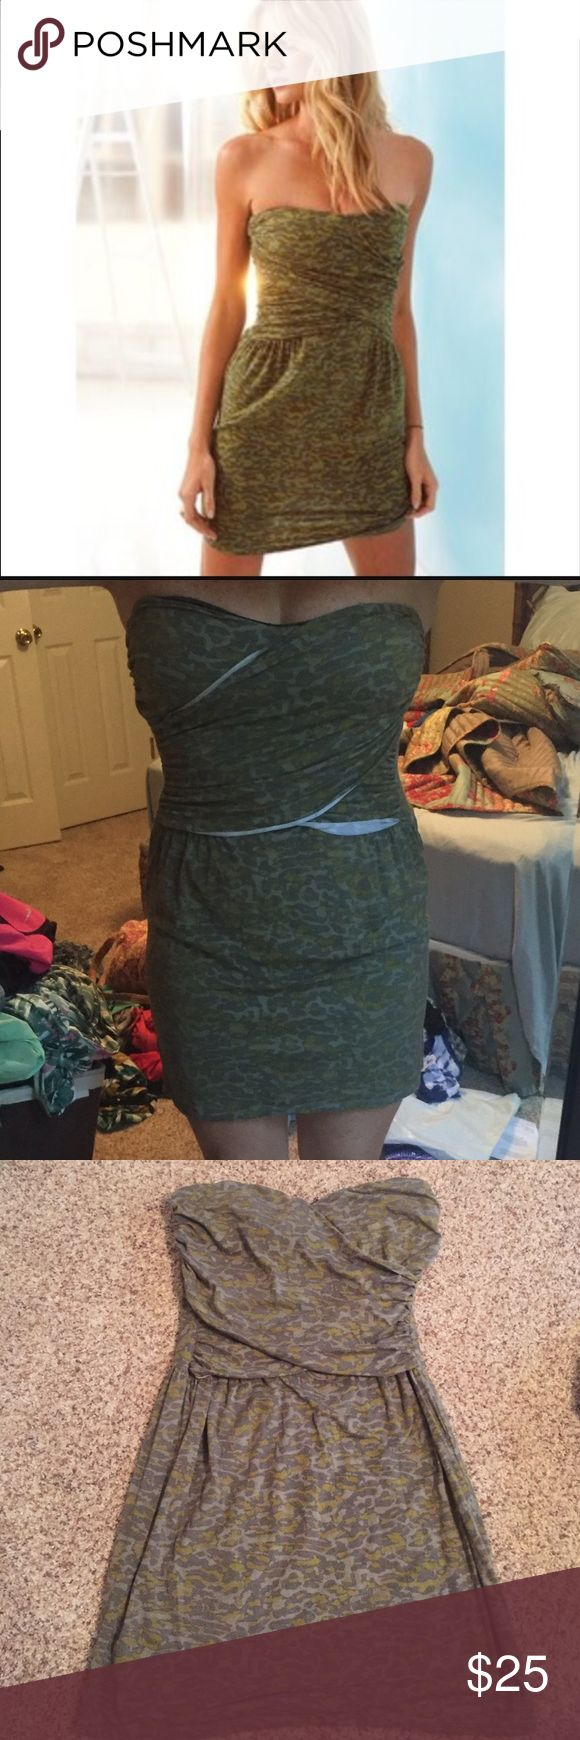 Victoria's Secret Bra Top Dress Strapless Dress, SO Flattering. Size medium with built in shelf bra. Cute camo pattern. Seam sometimes rolls up (modeled pic) but can be easily ironed into place. Make an offer! Victoria's Secret Dresses Strapless